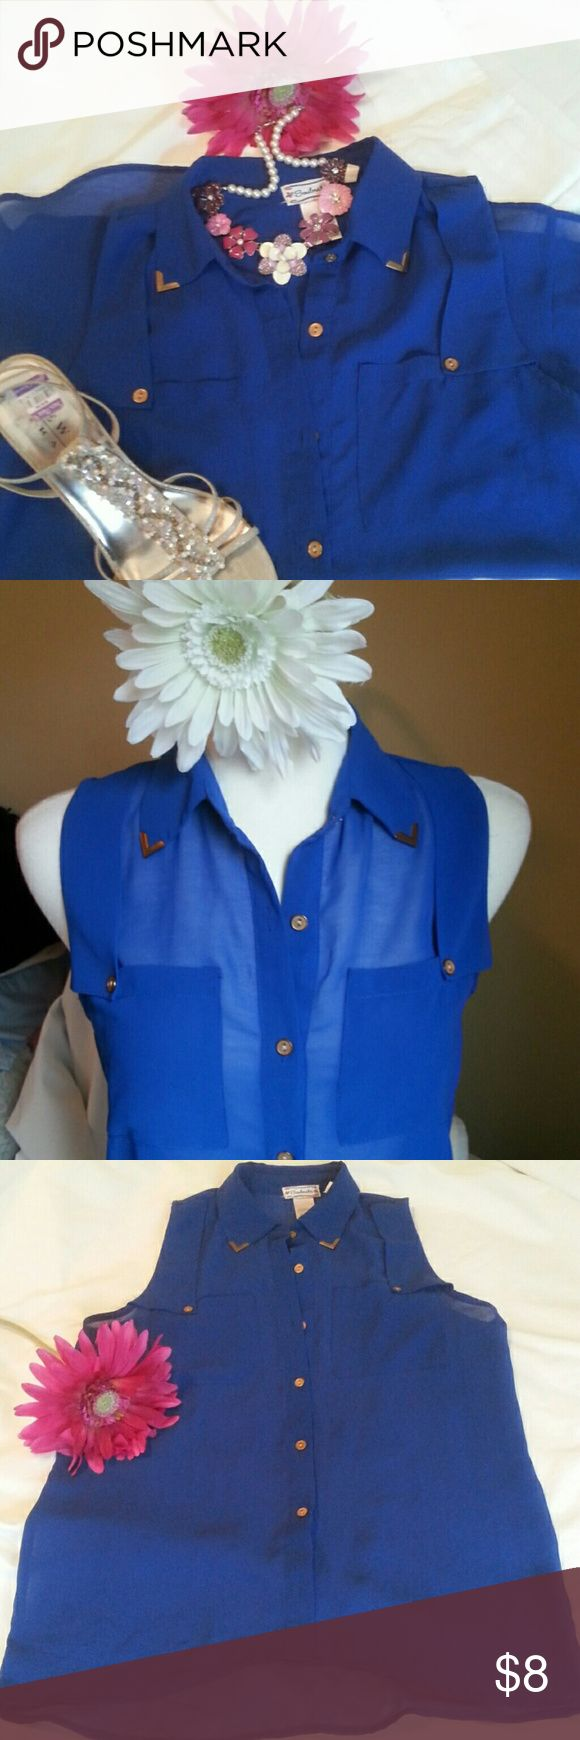 TOPS BOGO Sheer Sleeveless hi low blouse The most beautiful royal blue blouse with goldtone buttons and tipped collar.   EUC...no signs of wear. Great with white pants/shorts/skirt Soulmates Tops Blouses